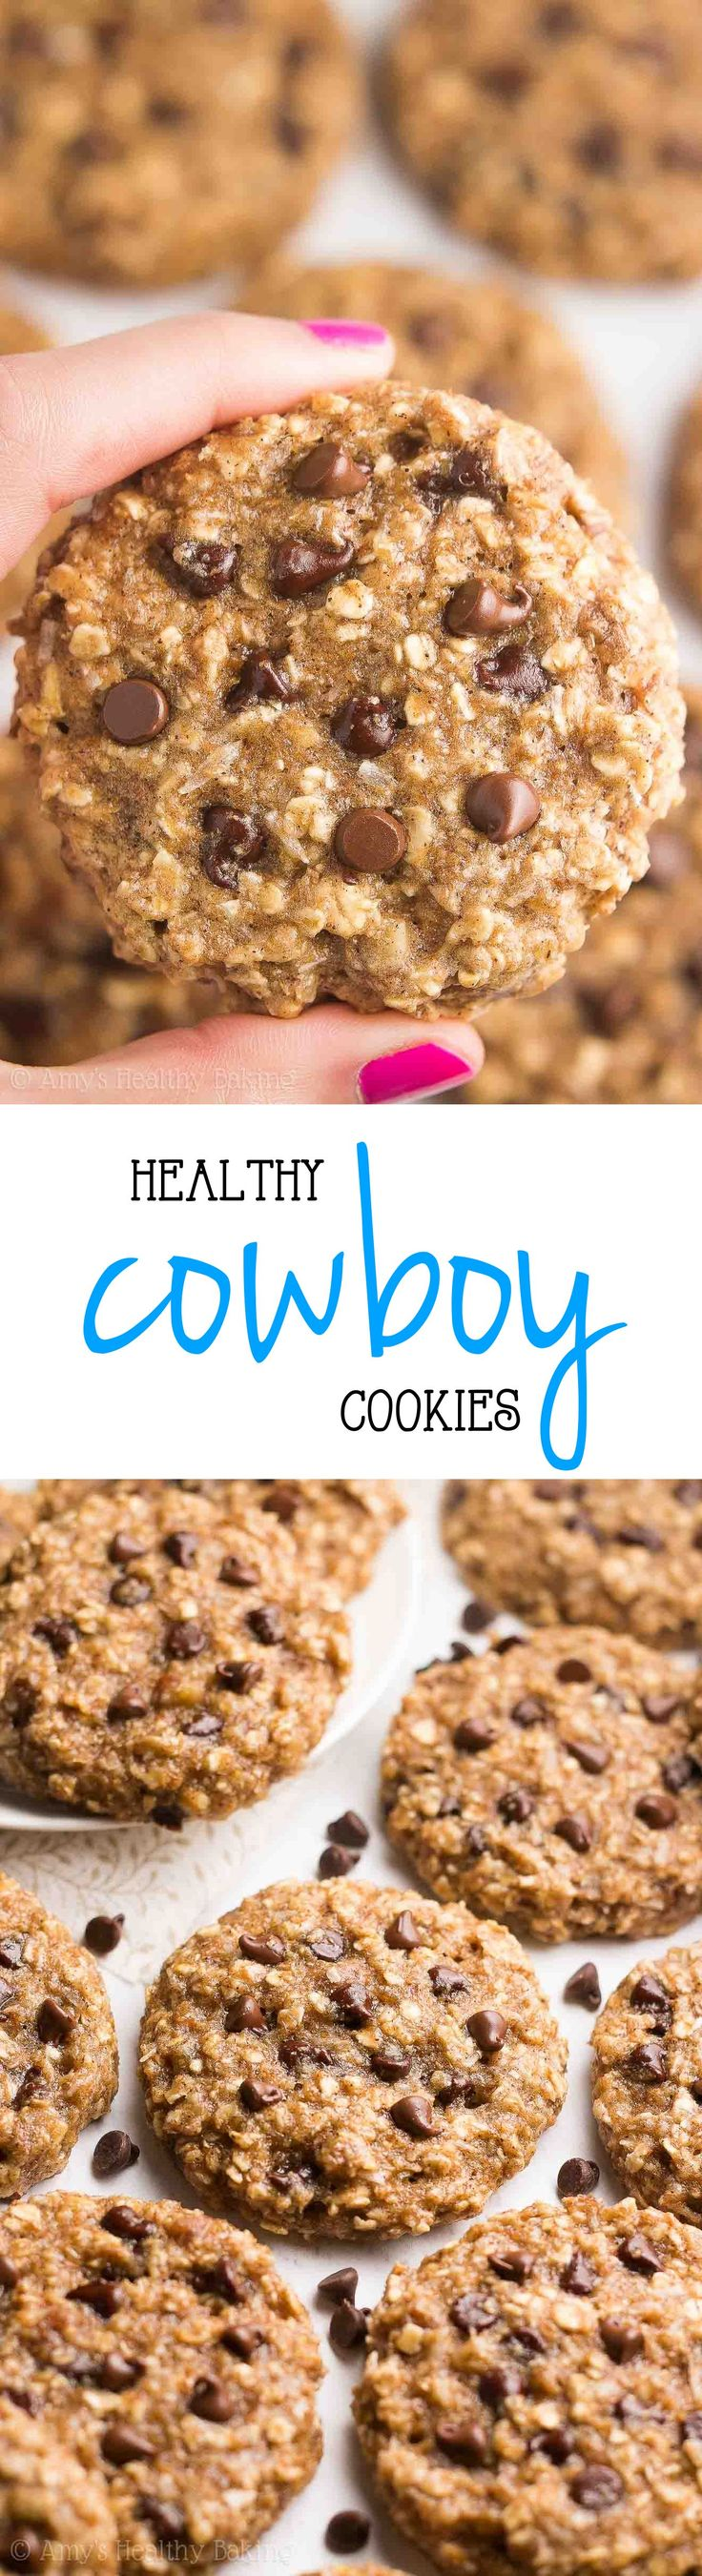 196 best Cookie Recipes images on Pinterest